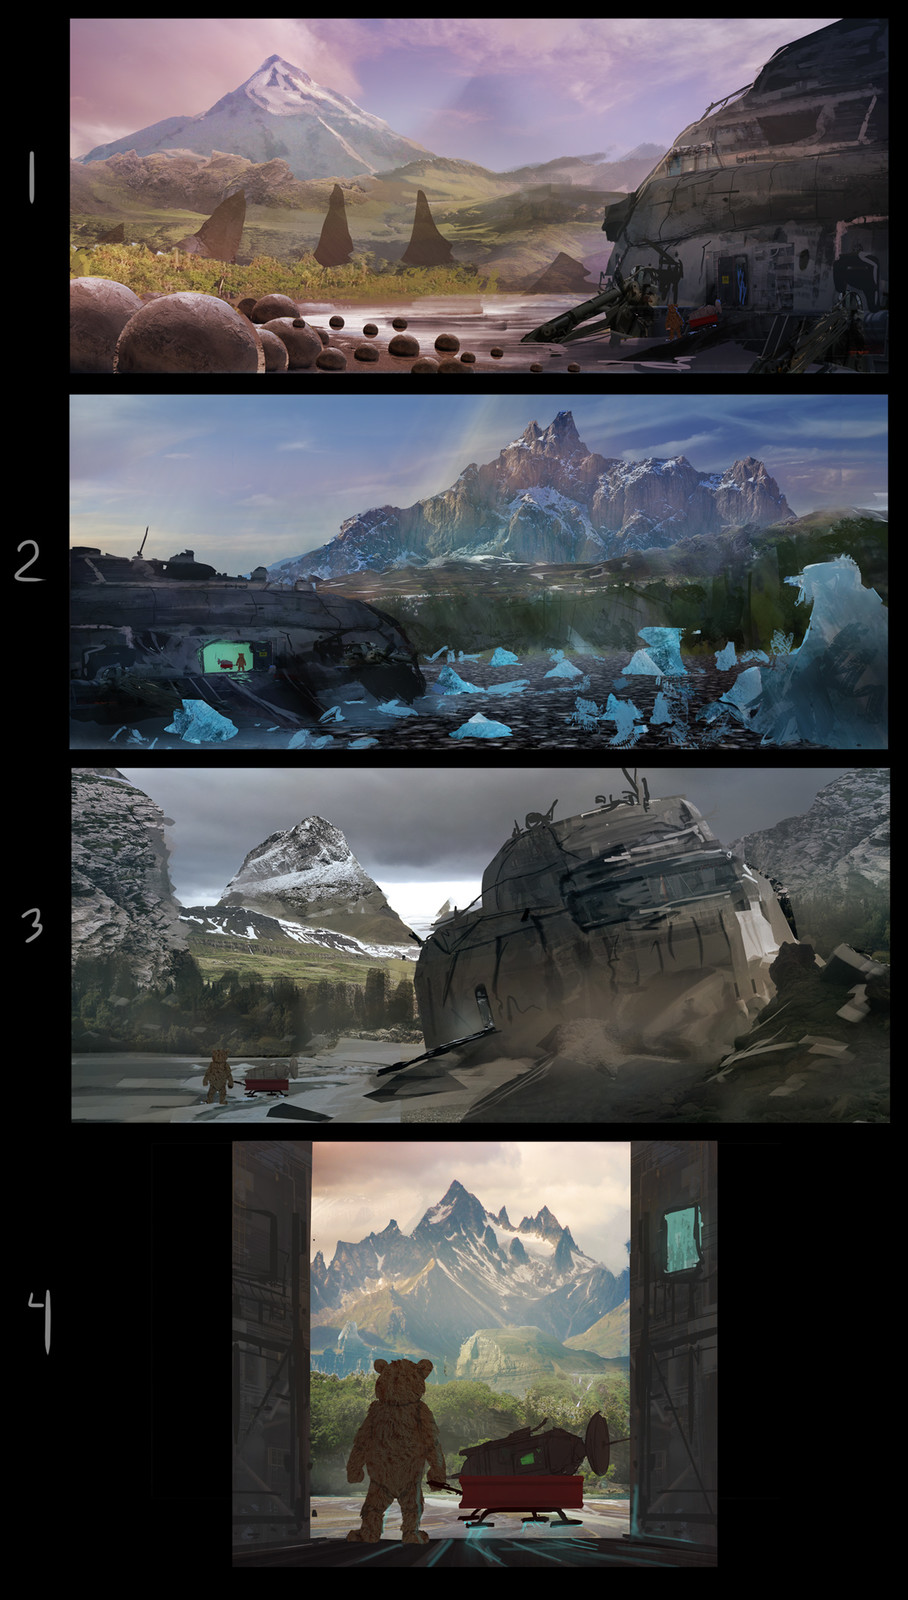 Color sketches. We went with a combination of 1 and 2 for the final image.